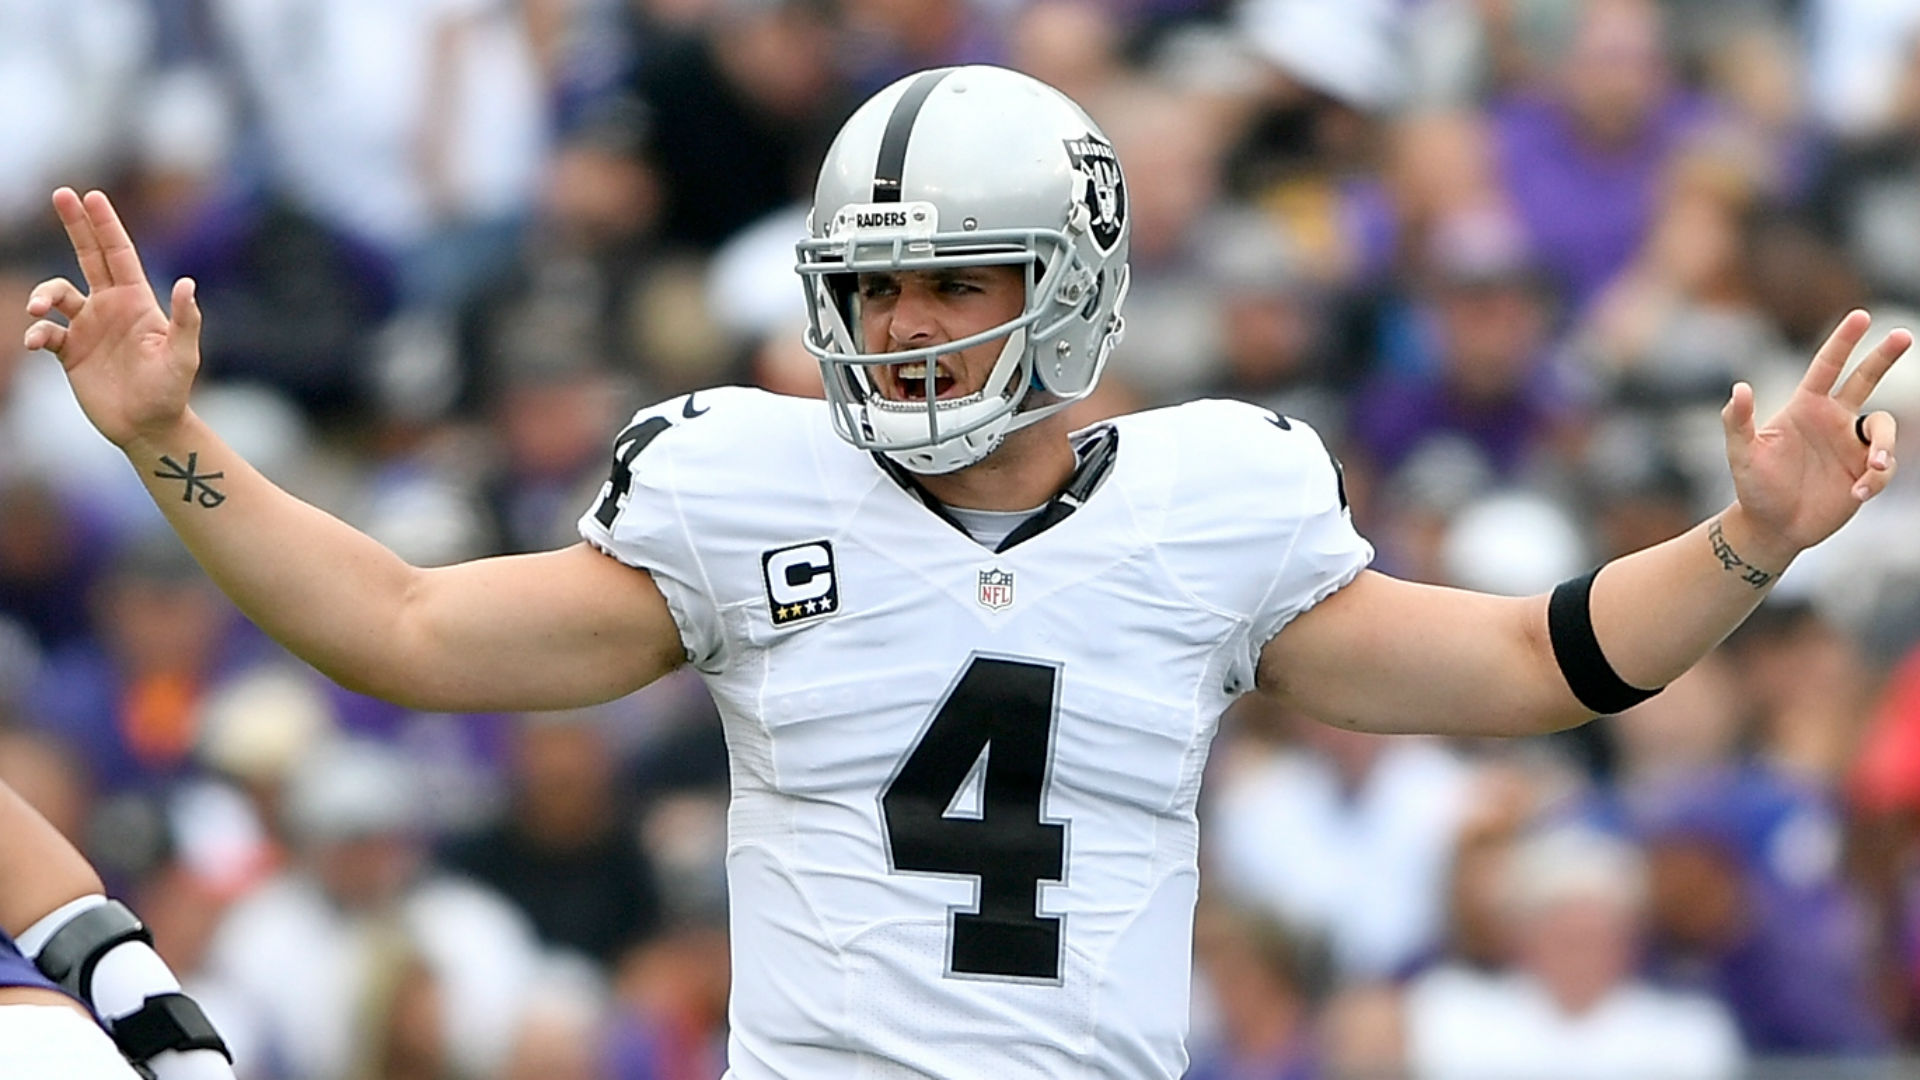 Raiders Derek Carr and Khalil Mack traveled a long painful road